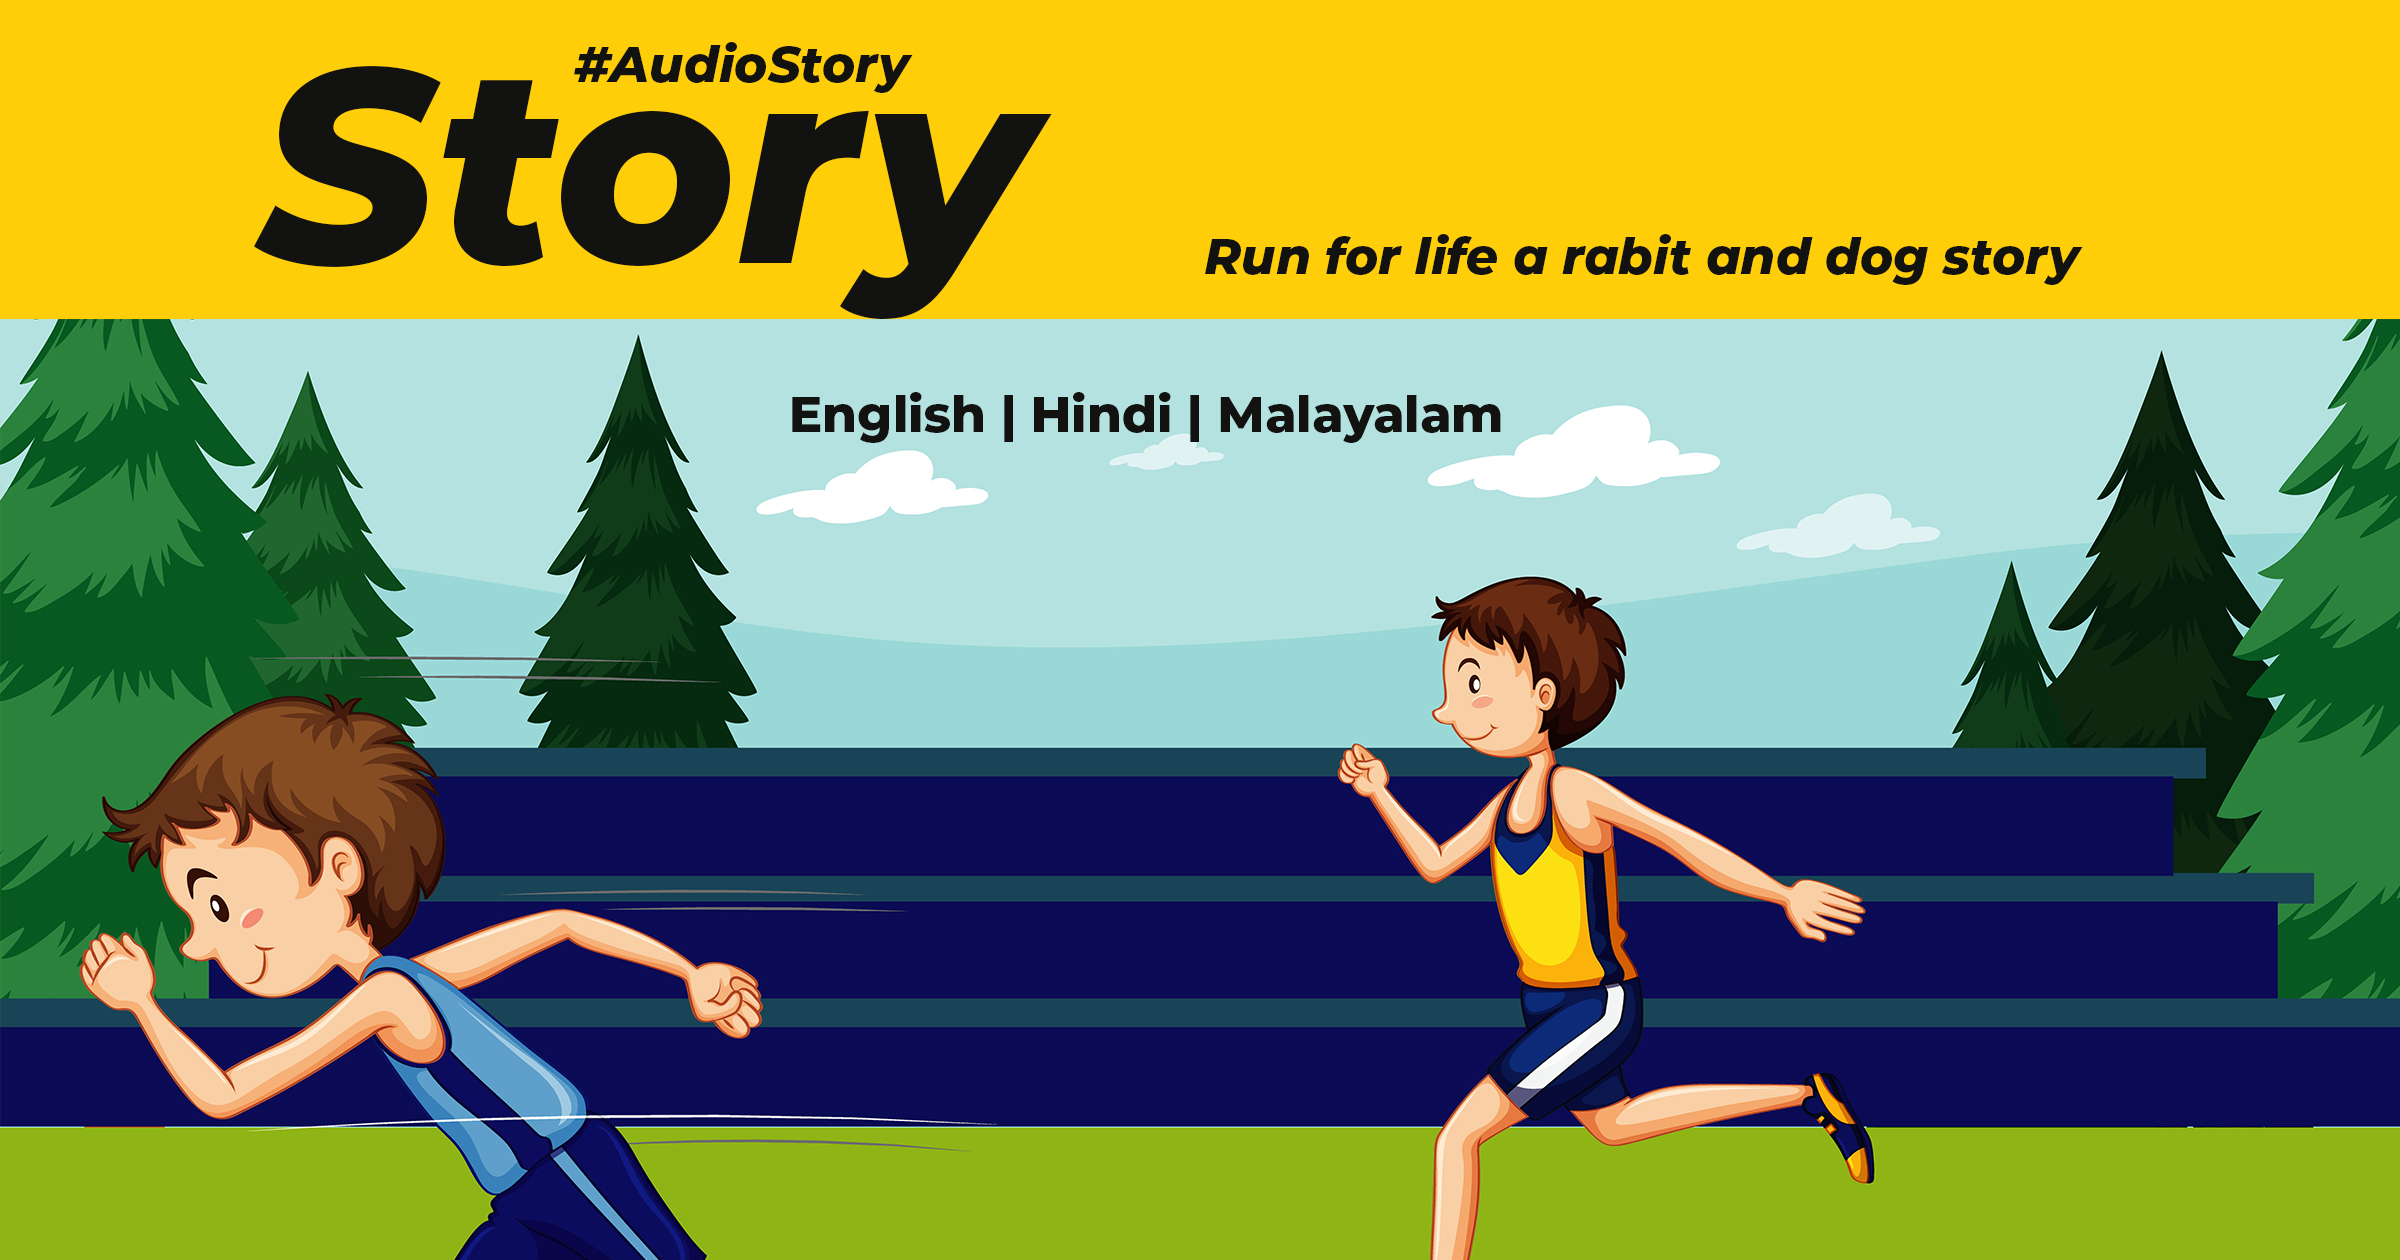 Run for life a great moral story